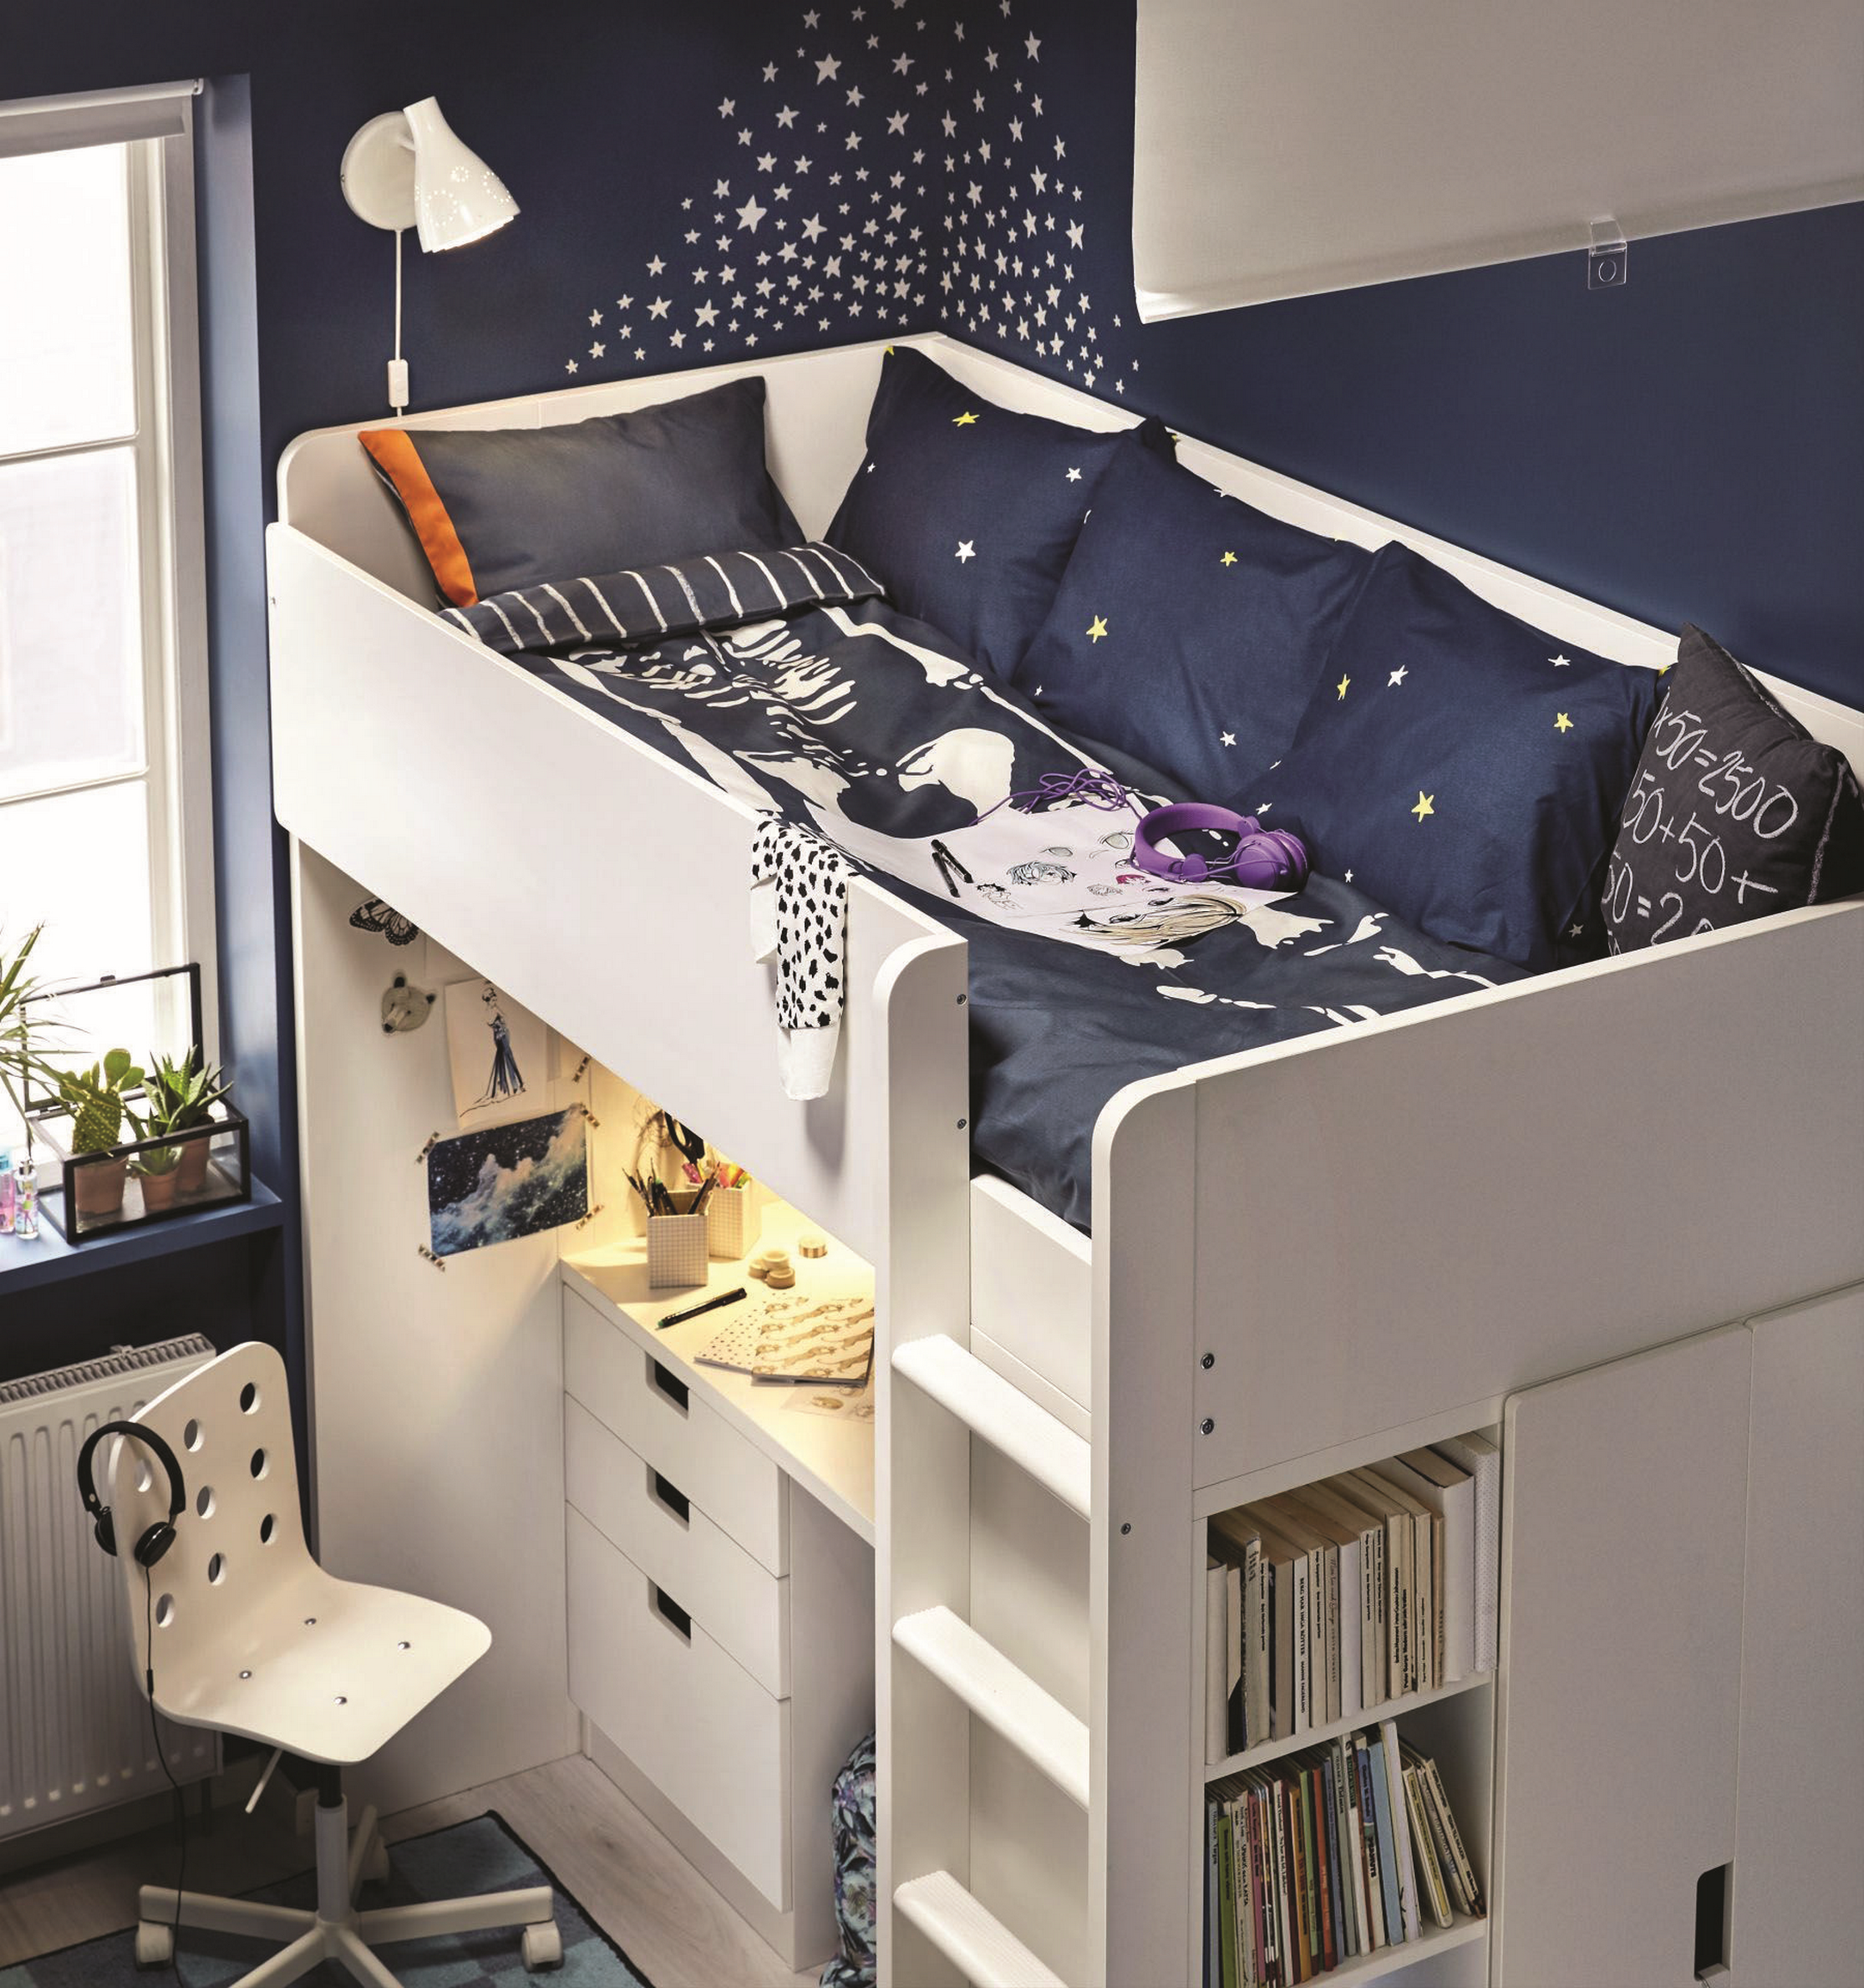 39 Amazing Bunk Beds With Desk Design Ideas Tips Choosing Bunk Beds With Desks 14